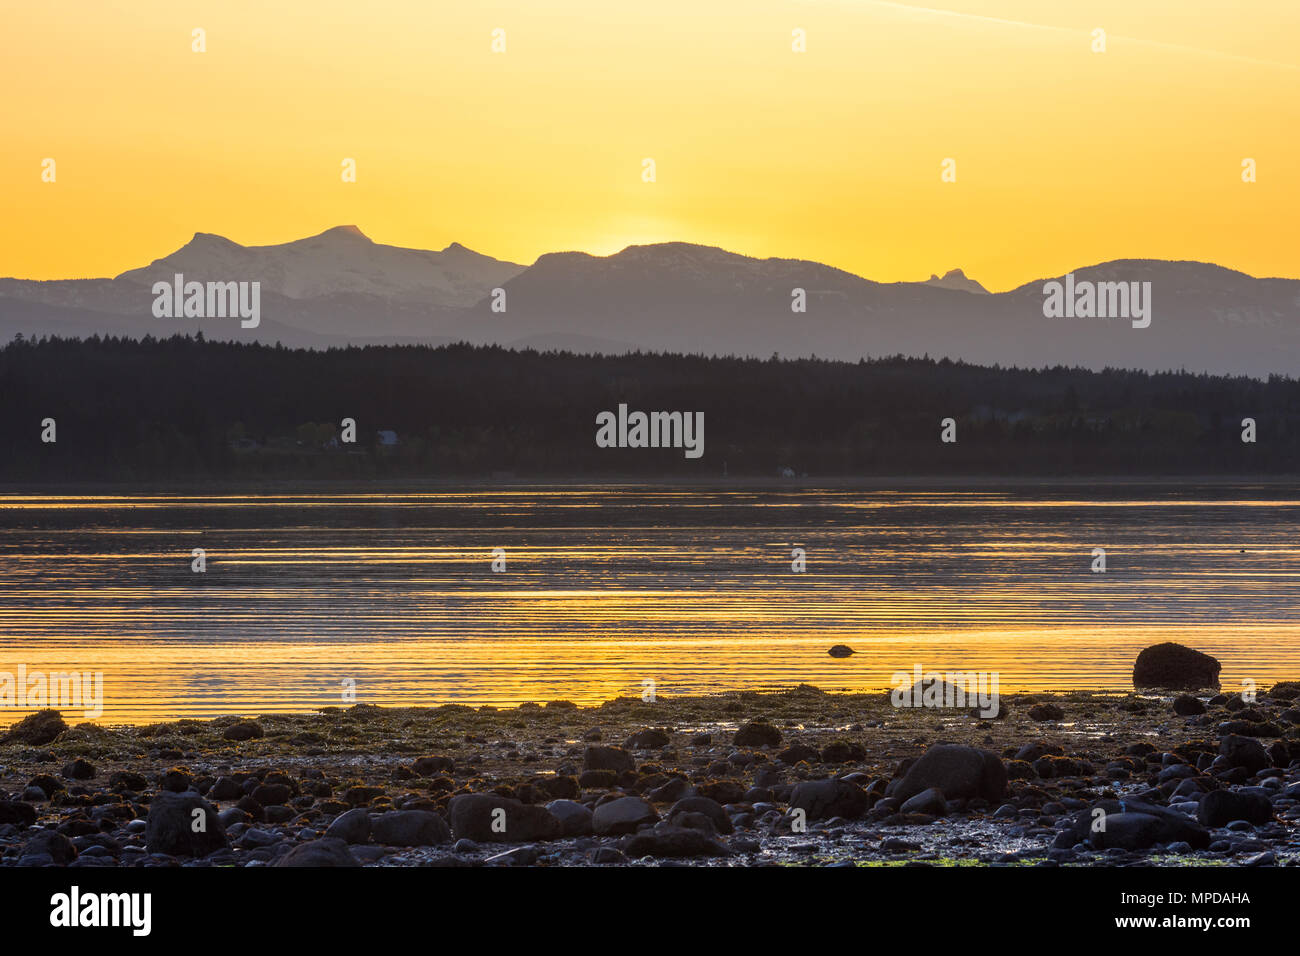 Sunset looking towards Vancouver Island from Hornby Island, BC, Canada. - Stock Image